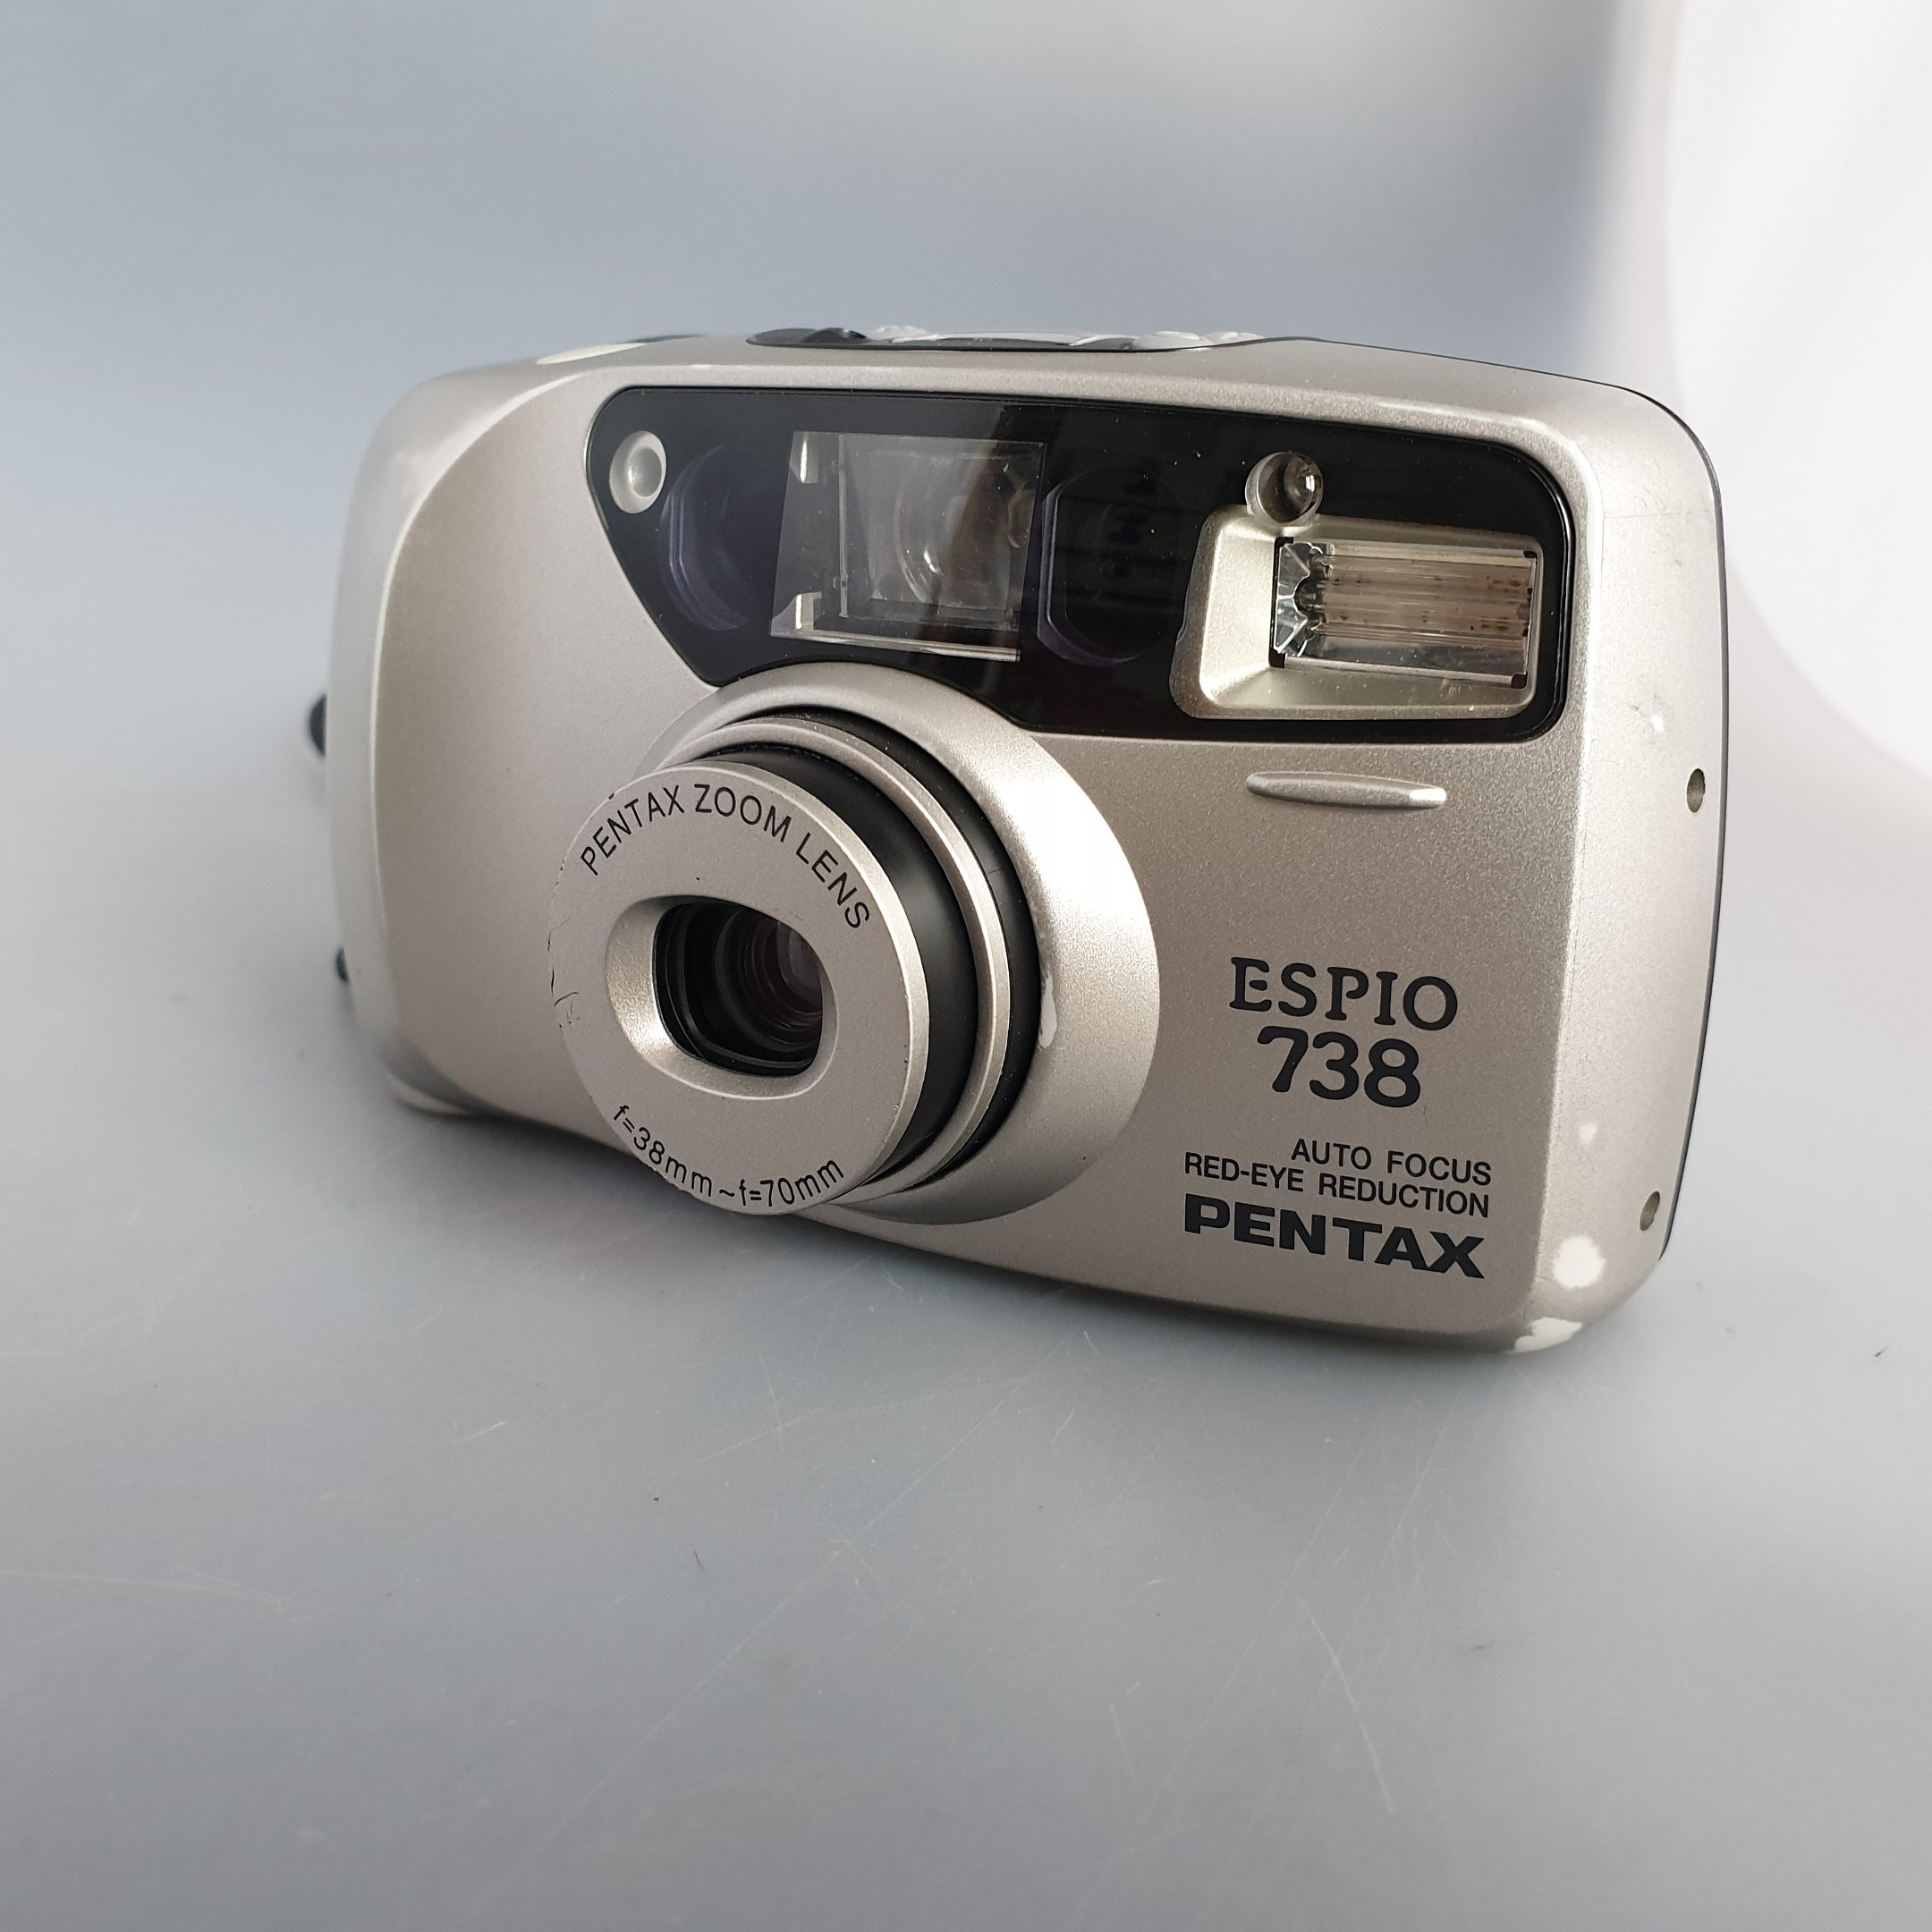 Pentax ESPIO 738  Silver 35mm Compact  Point and shoot